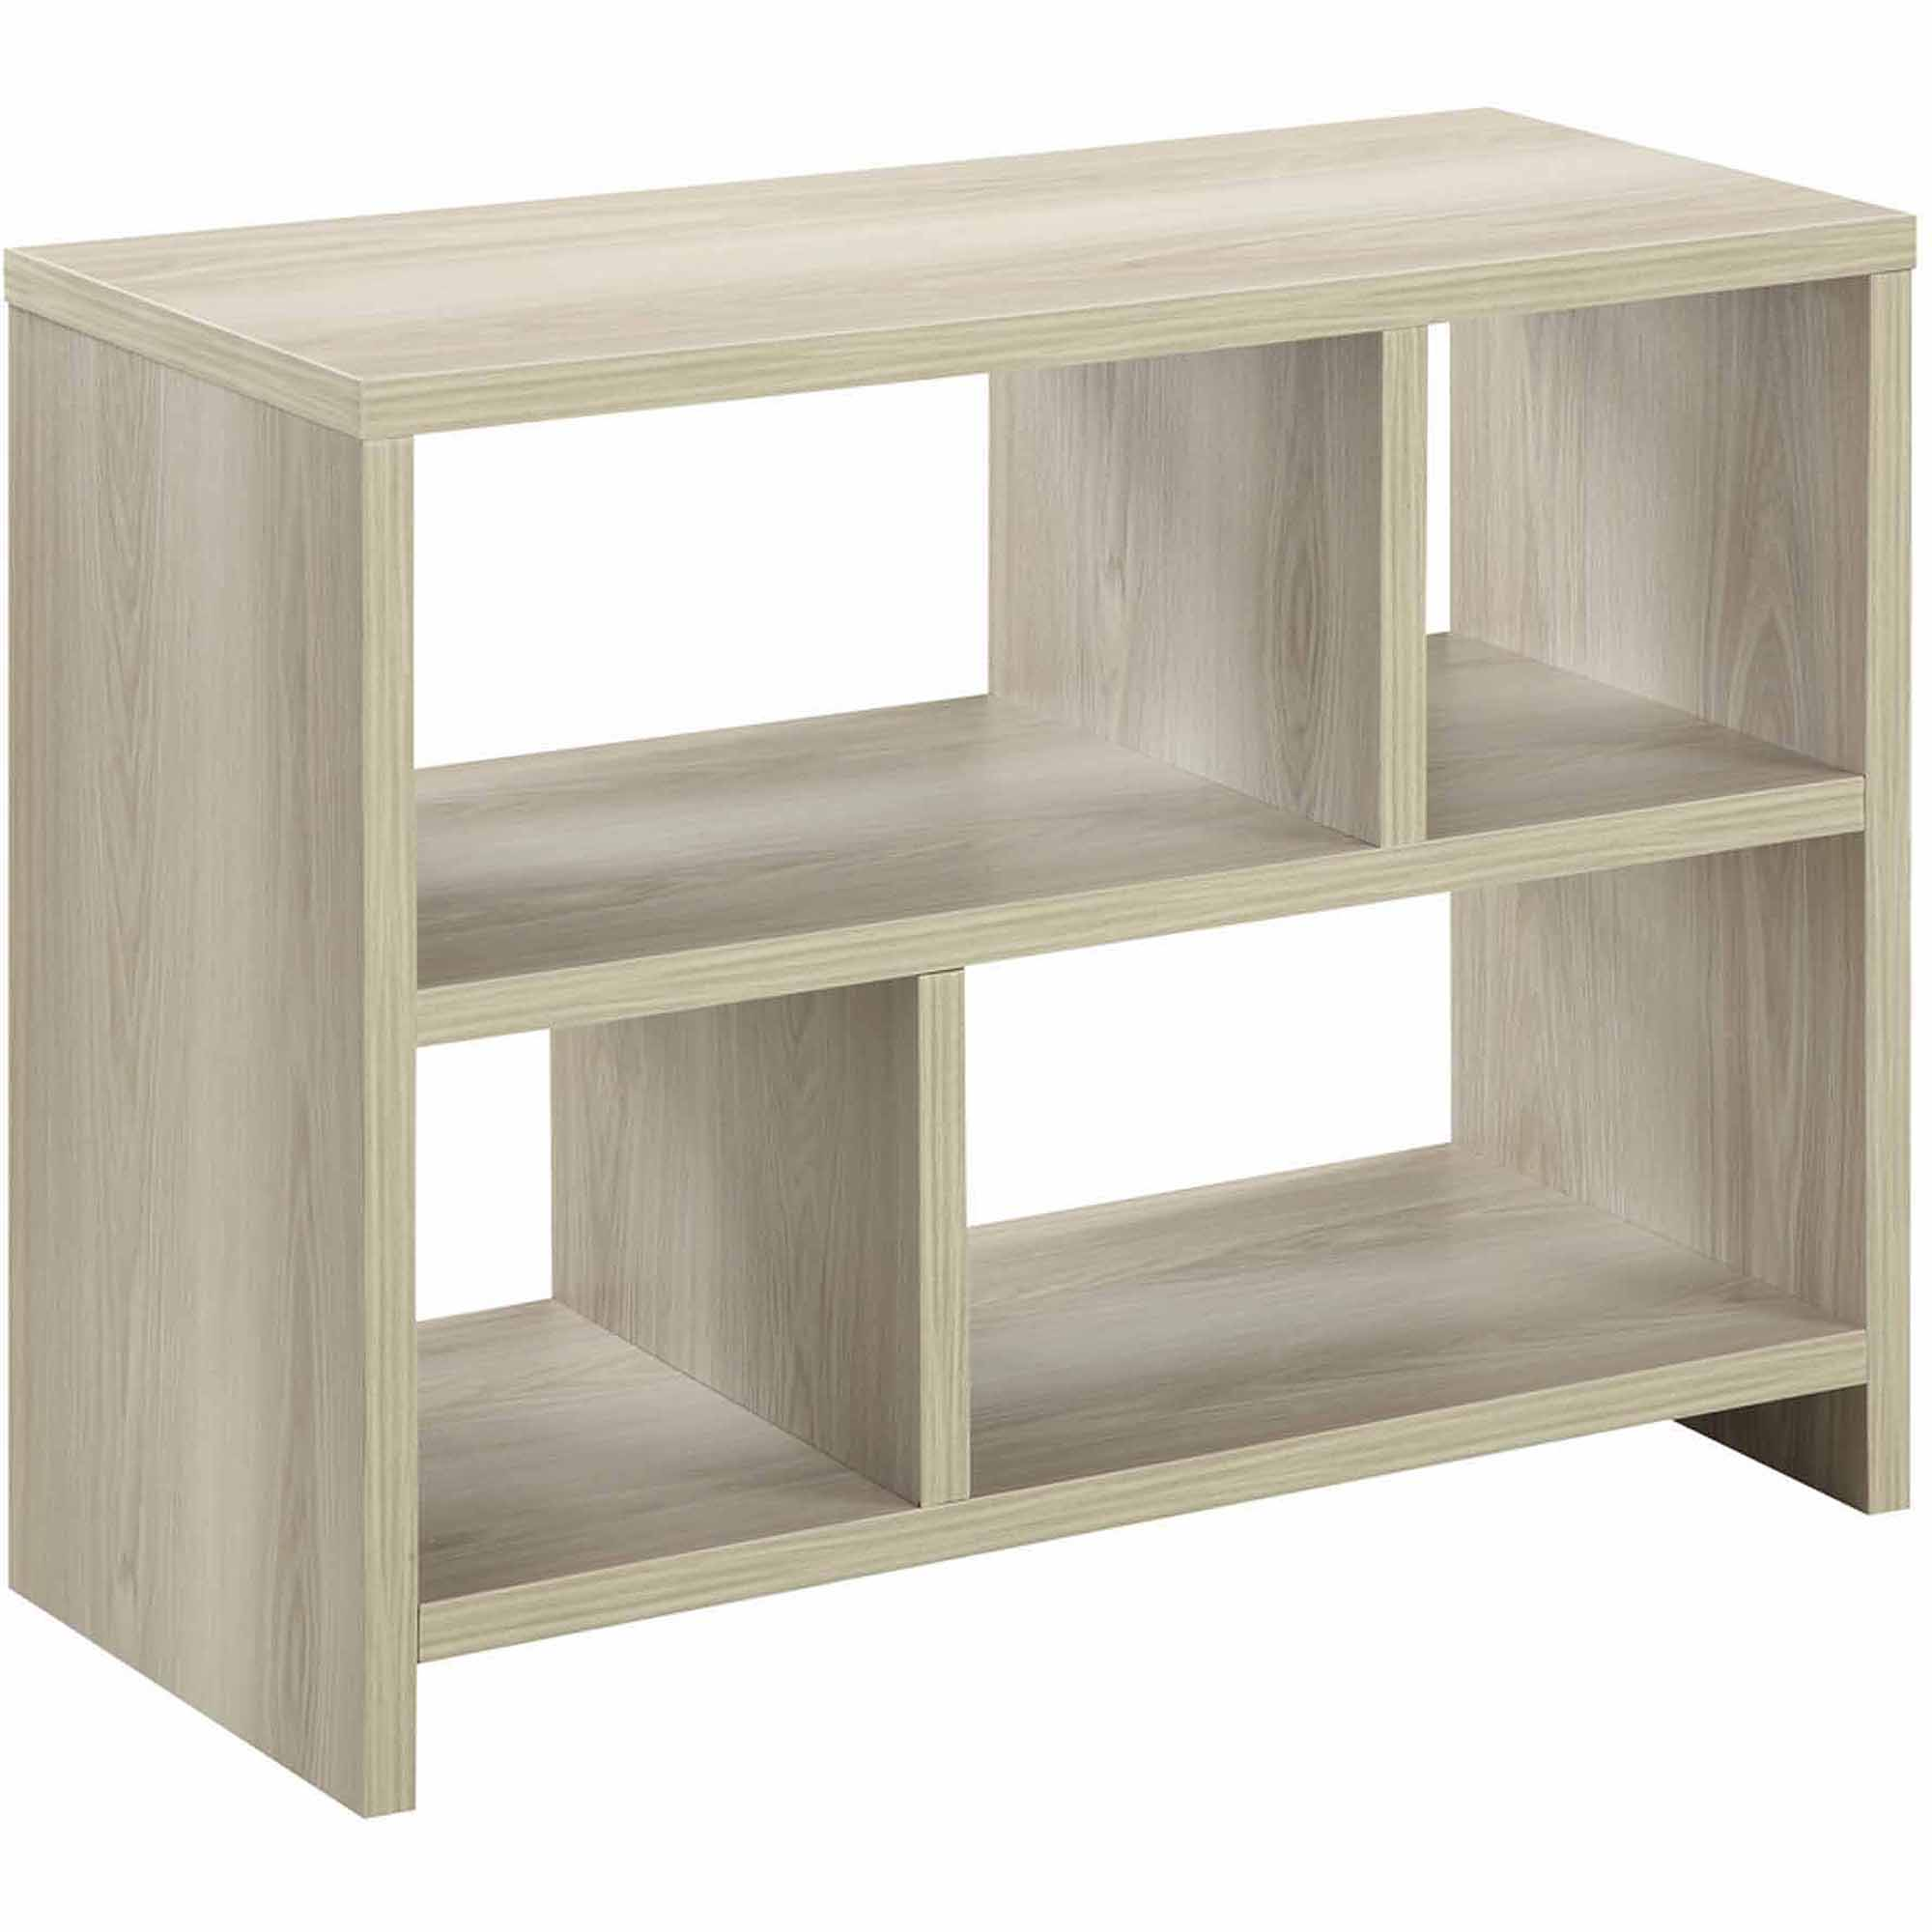 Attrayant Convenience Concepts Northfield Console Table With Shelves, Multiple Colors    Walmart.com